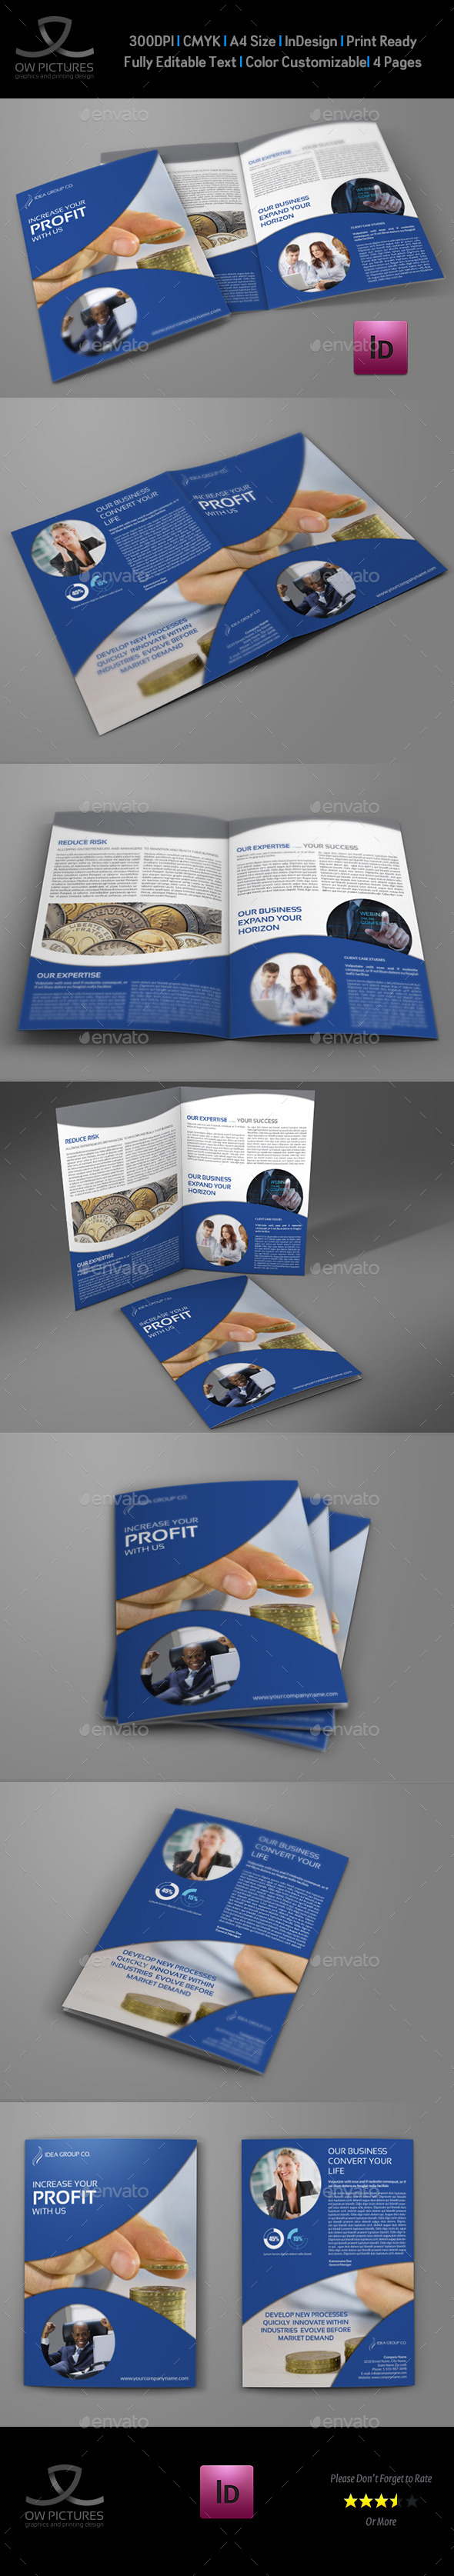 GraphicRiver Company Brochure Bi-Fold Template Vol.30 8998554